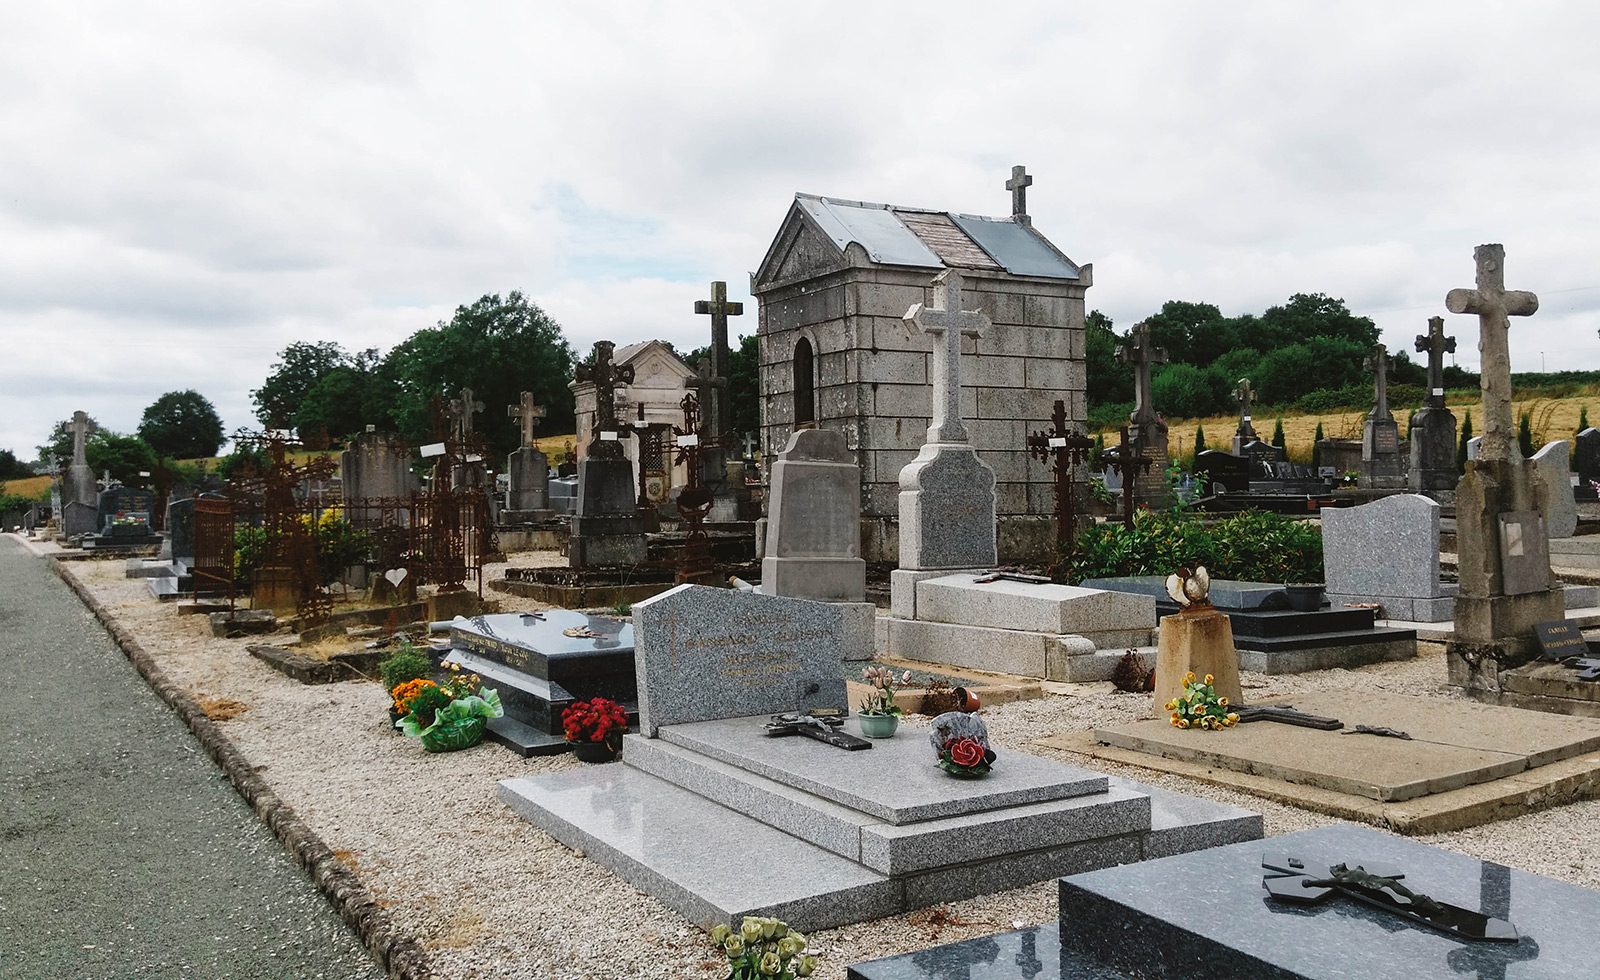 acourseindying_loupfougeres_cemetery_17